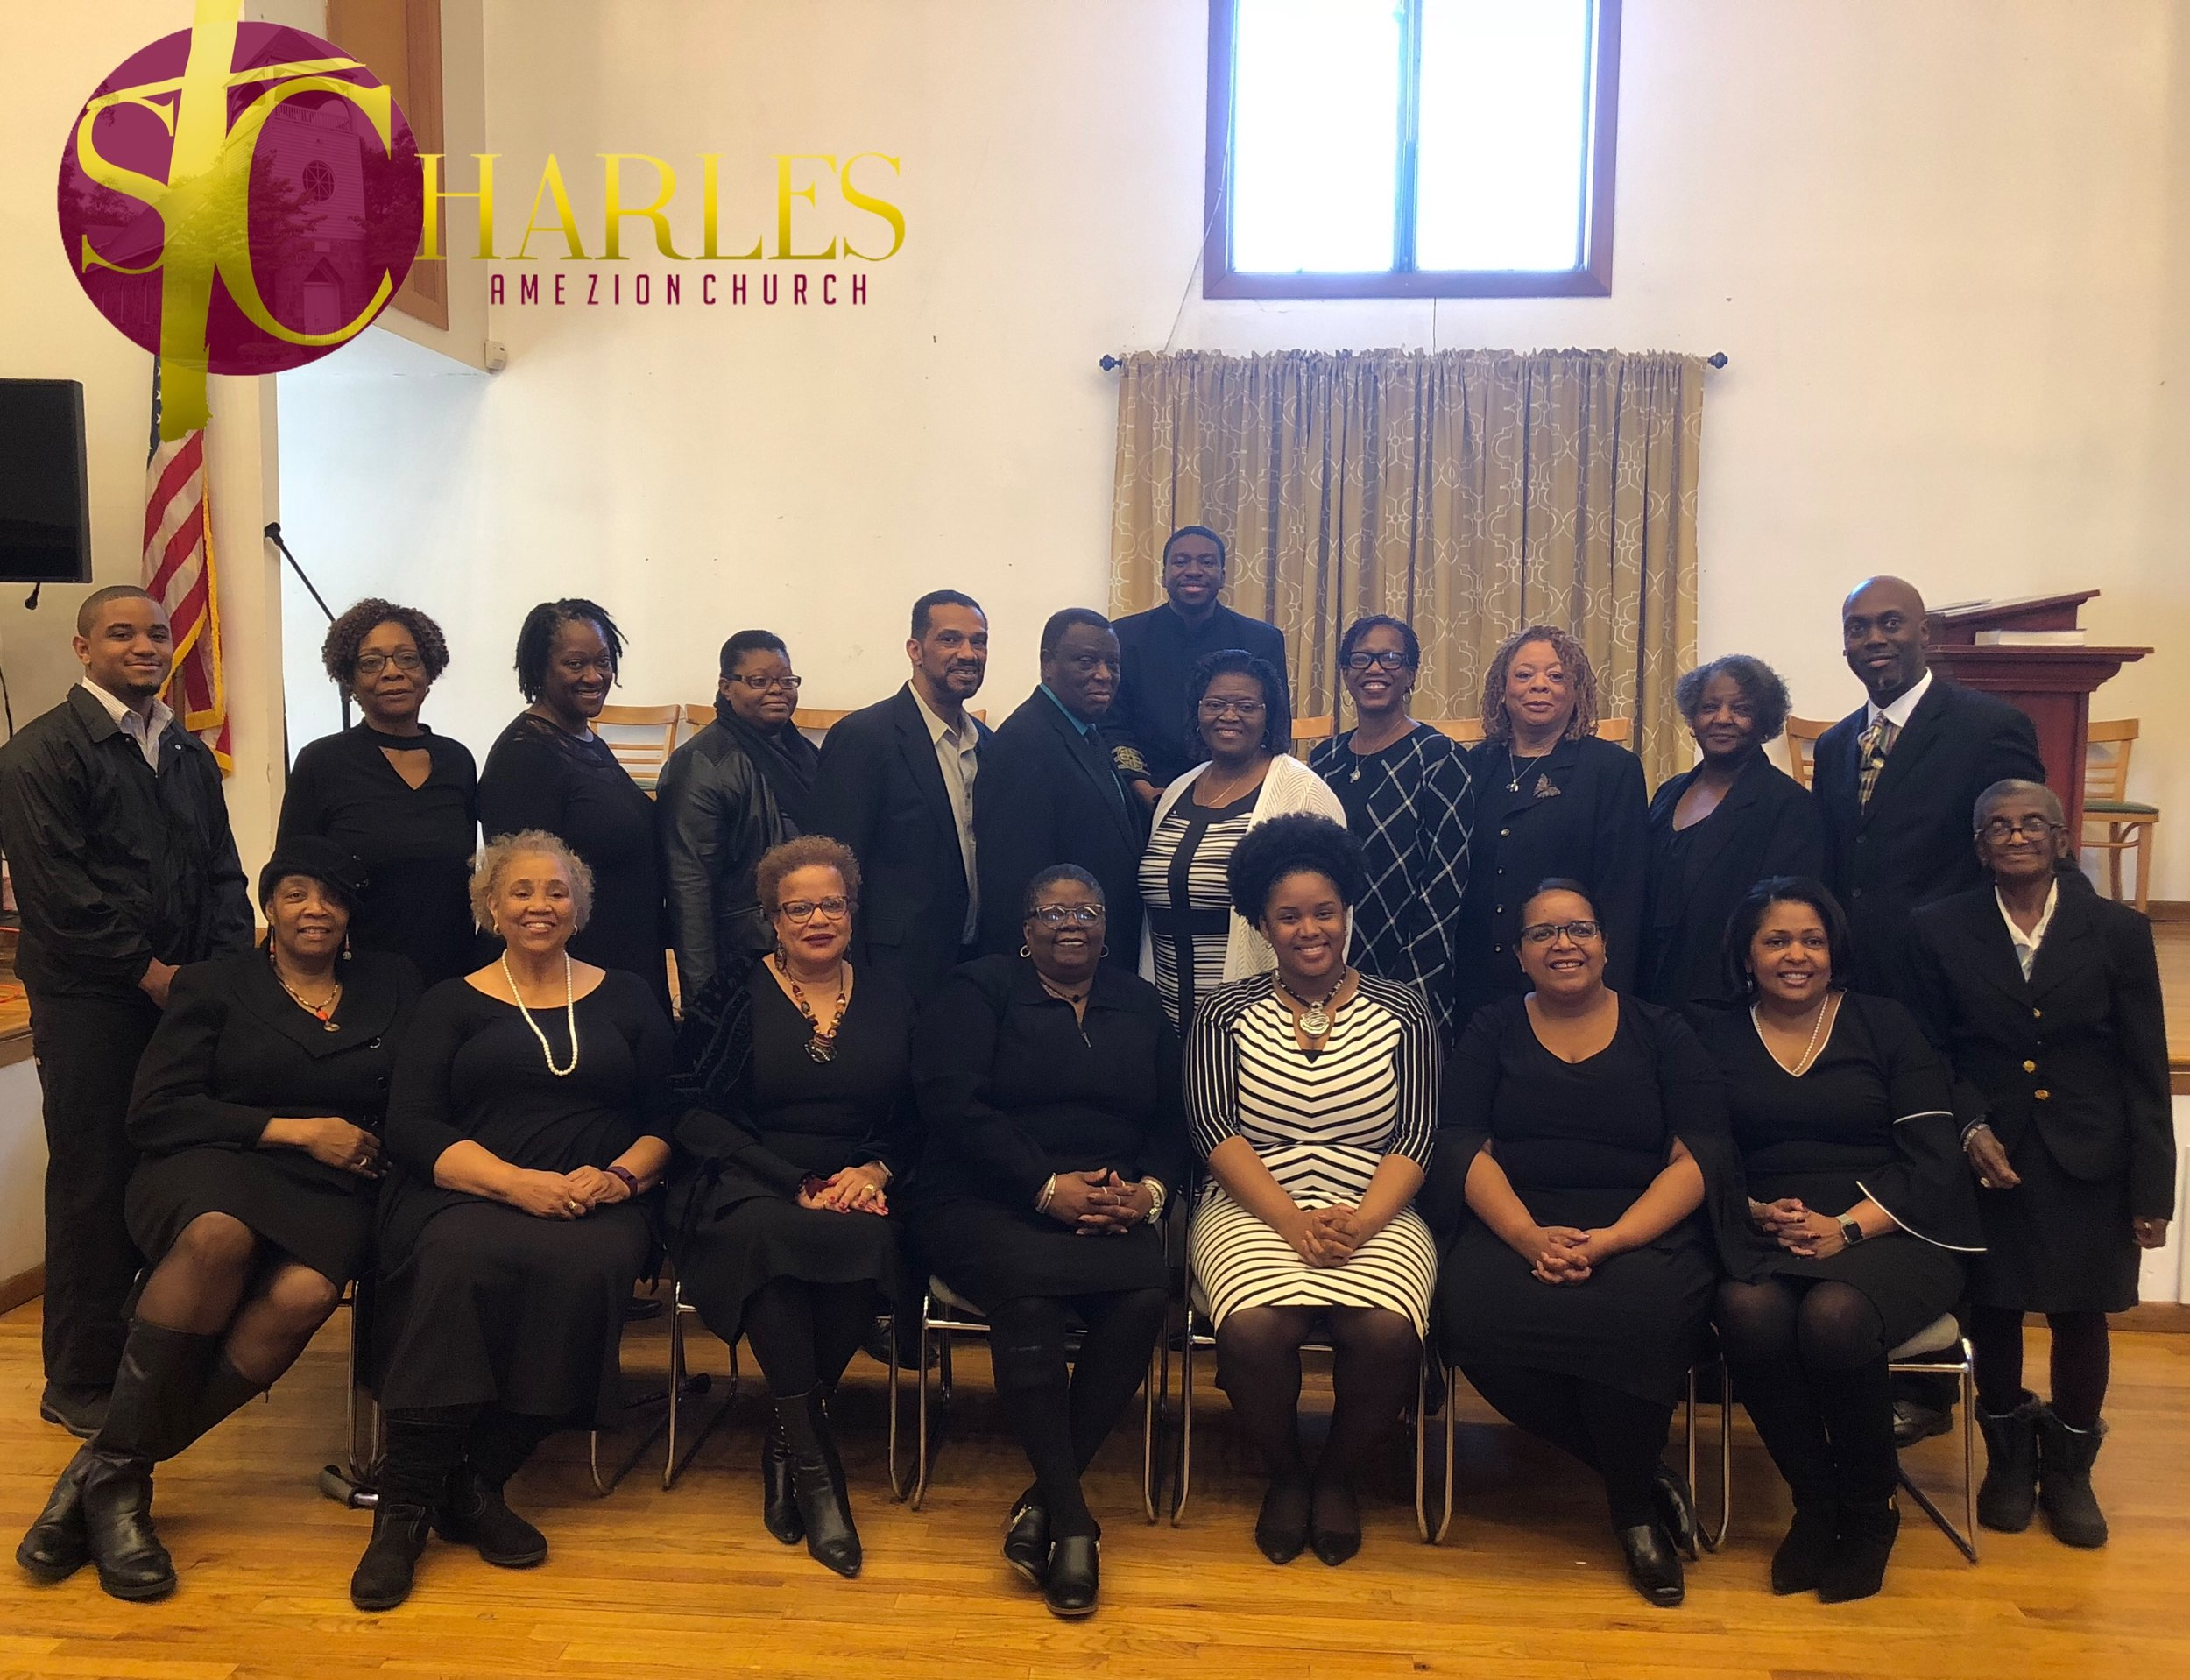 The Samuel L. Shufford Mass Choir - The Samuel L. Shuffled Mass Choir ministers in song every Sunday, along with accompanying Pastor McLauchlin when he ministers in the surrounding community. Under the leadership of our Minister of Music Daniel Perkins and Choir President Lawanda Lane, the choir has seen tremendous growth in membership. The choir rehearses every Tuesday night at 6 pm to maintain continued excellence in their craft as they prepare themselves to minister in song.